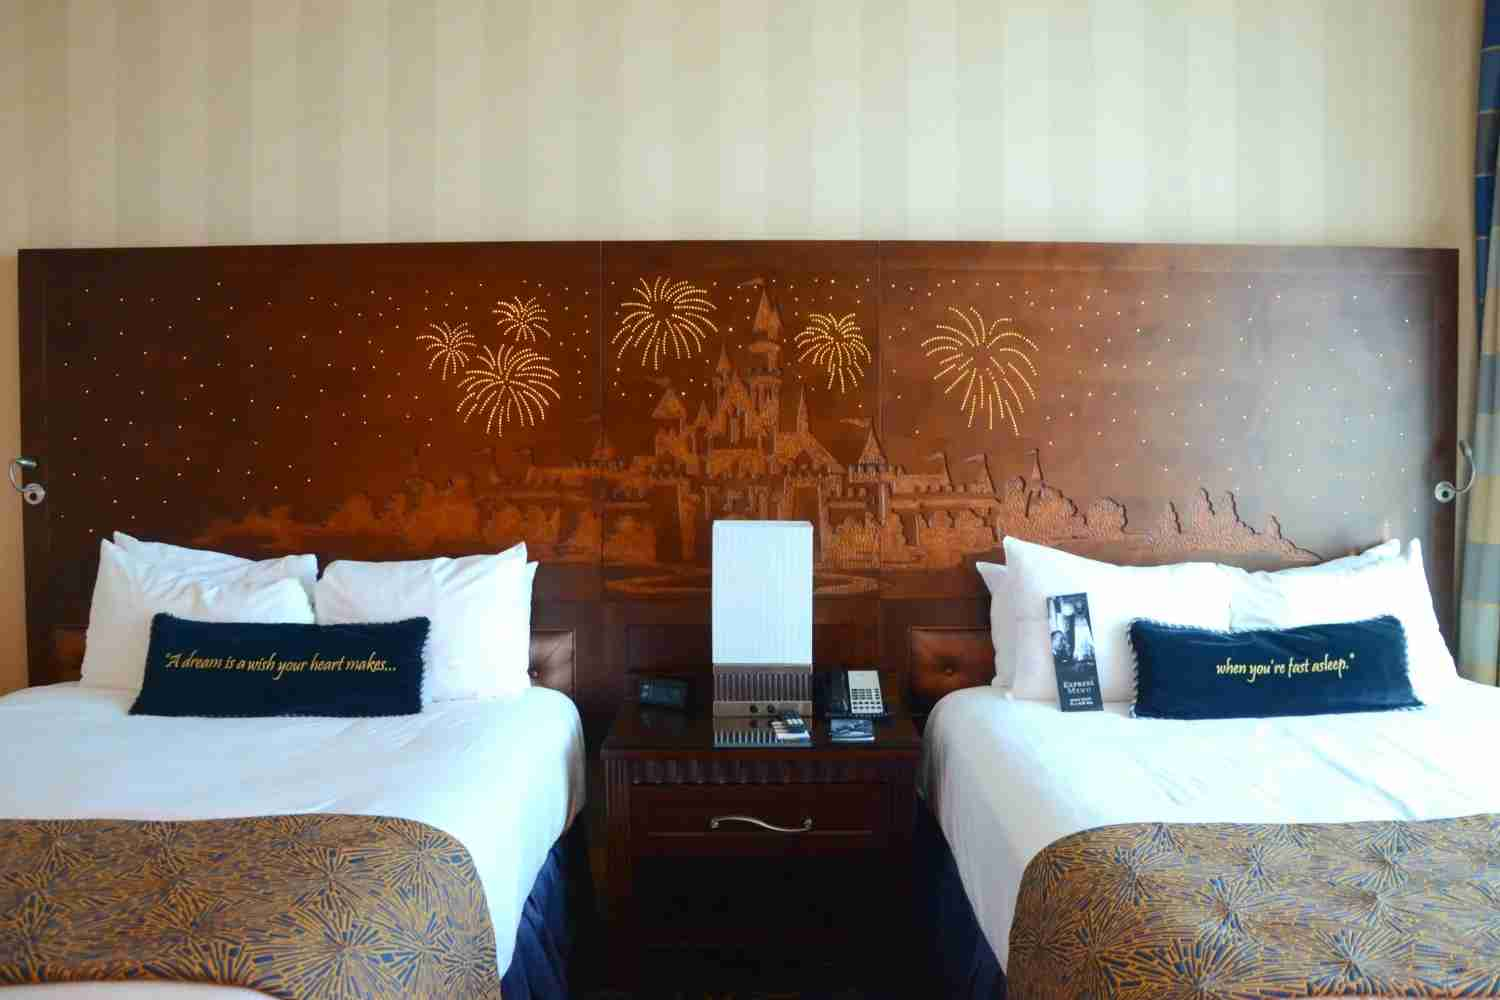 Most magical hotel headboard there ever was.(Image by Leslie Harvey.)